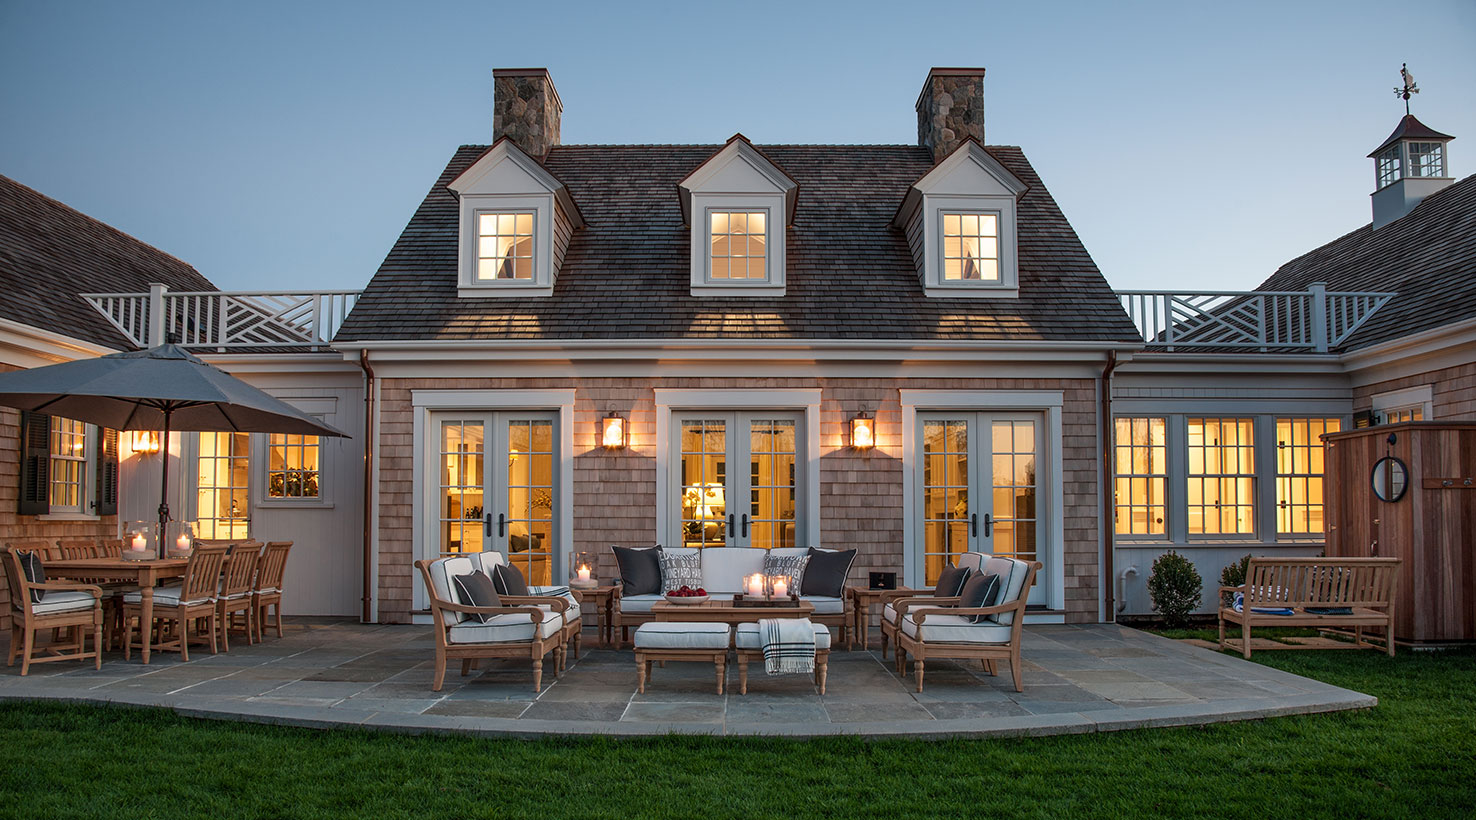 Image gallery hgtv dream home 2015 Www dreamhome